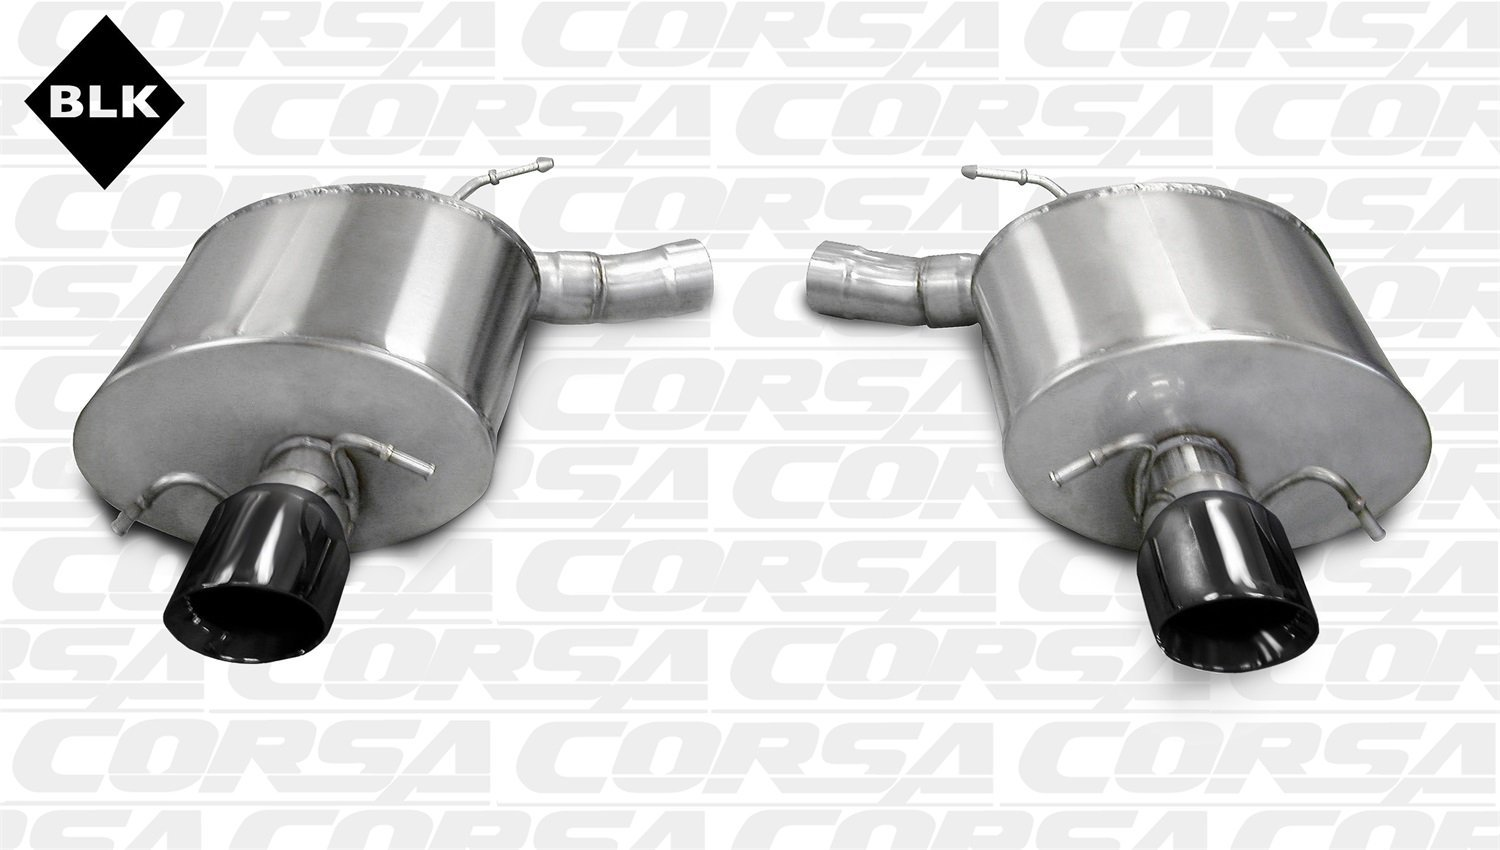 Corsa Black Sport Axle-Back Exhaust Cadillac CTS Sedan V 6.2L V8 09-13